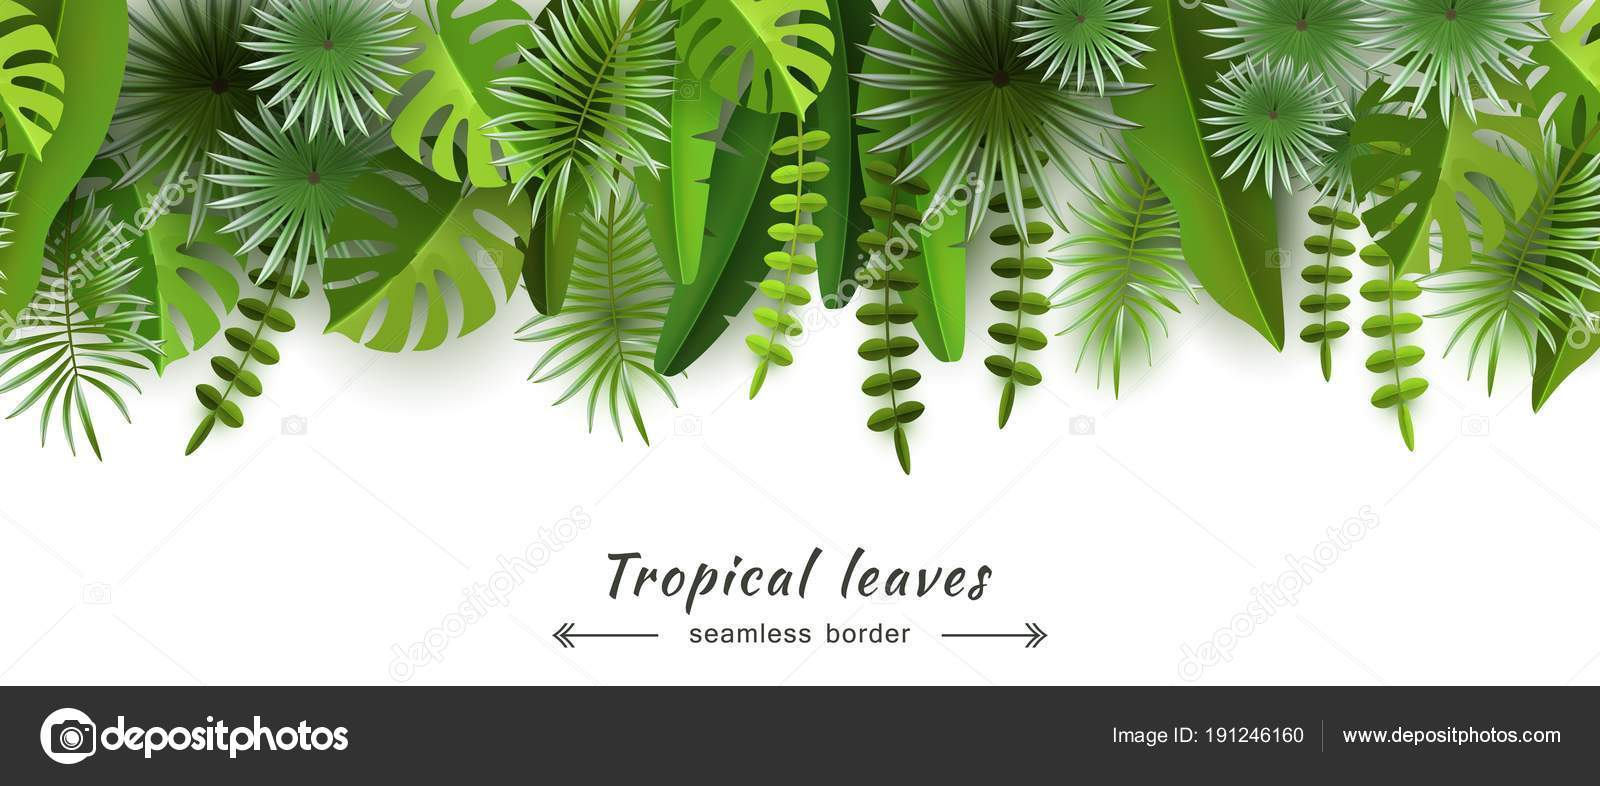 Tropical Leaves Seamless Border Isolated On White Background Summer And Seasonal Design Travel Advertising And Tourism Volumetric Image Cut Paper Vector Illustration Stock Vector C Smska 191246160 Small hawaiian flowers clip art. https depositphotos com 191246160 stock illustration tropical leaves seamless border isolated html